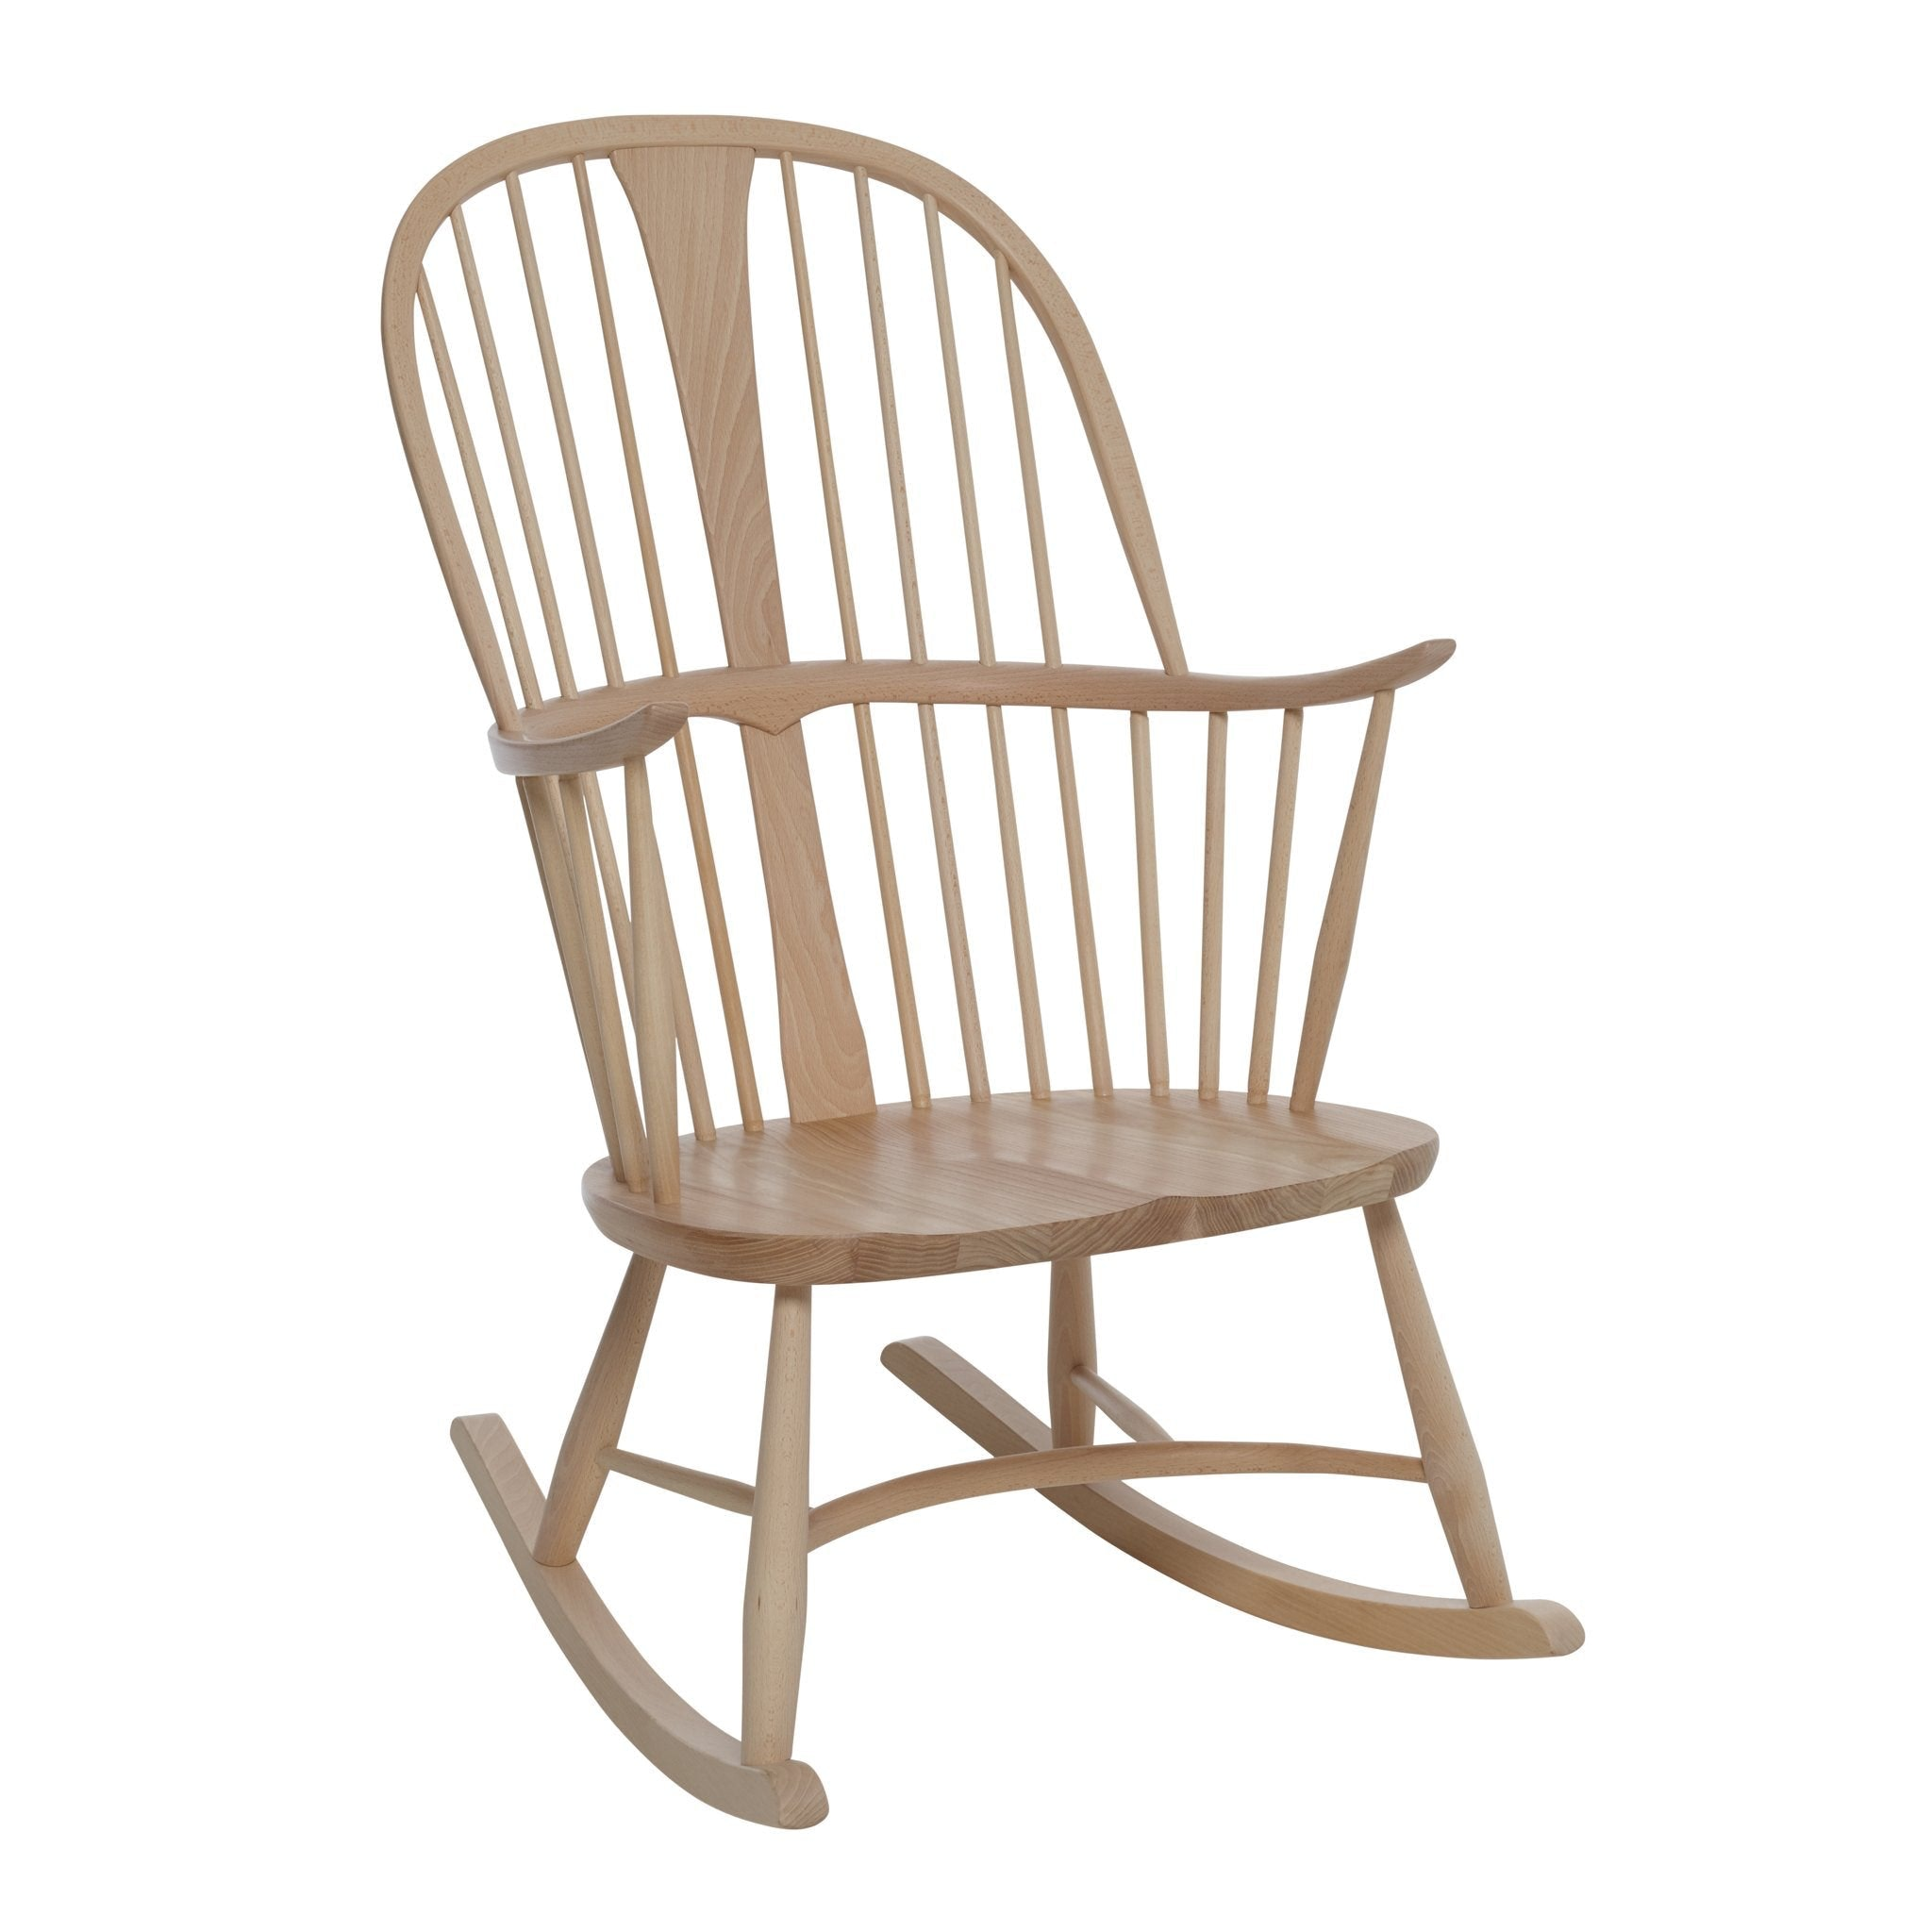 Originals Chairmakers Rocker by Ercol